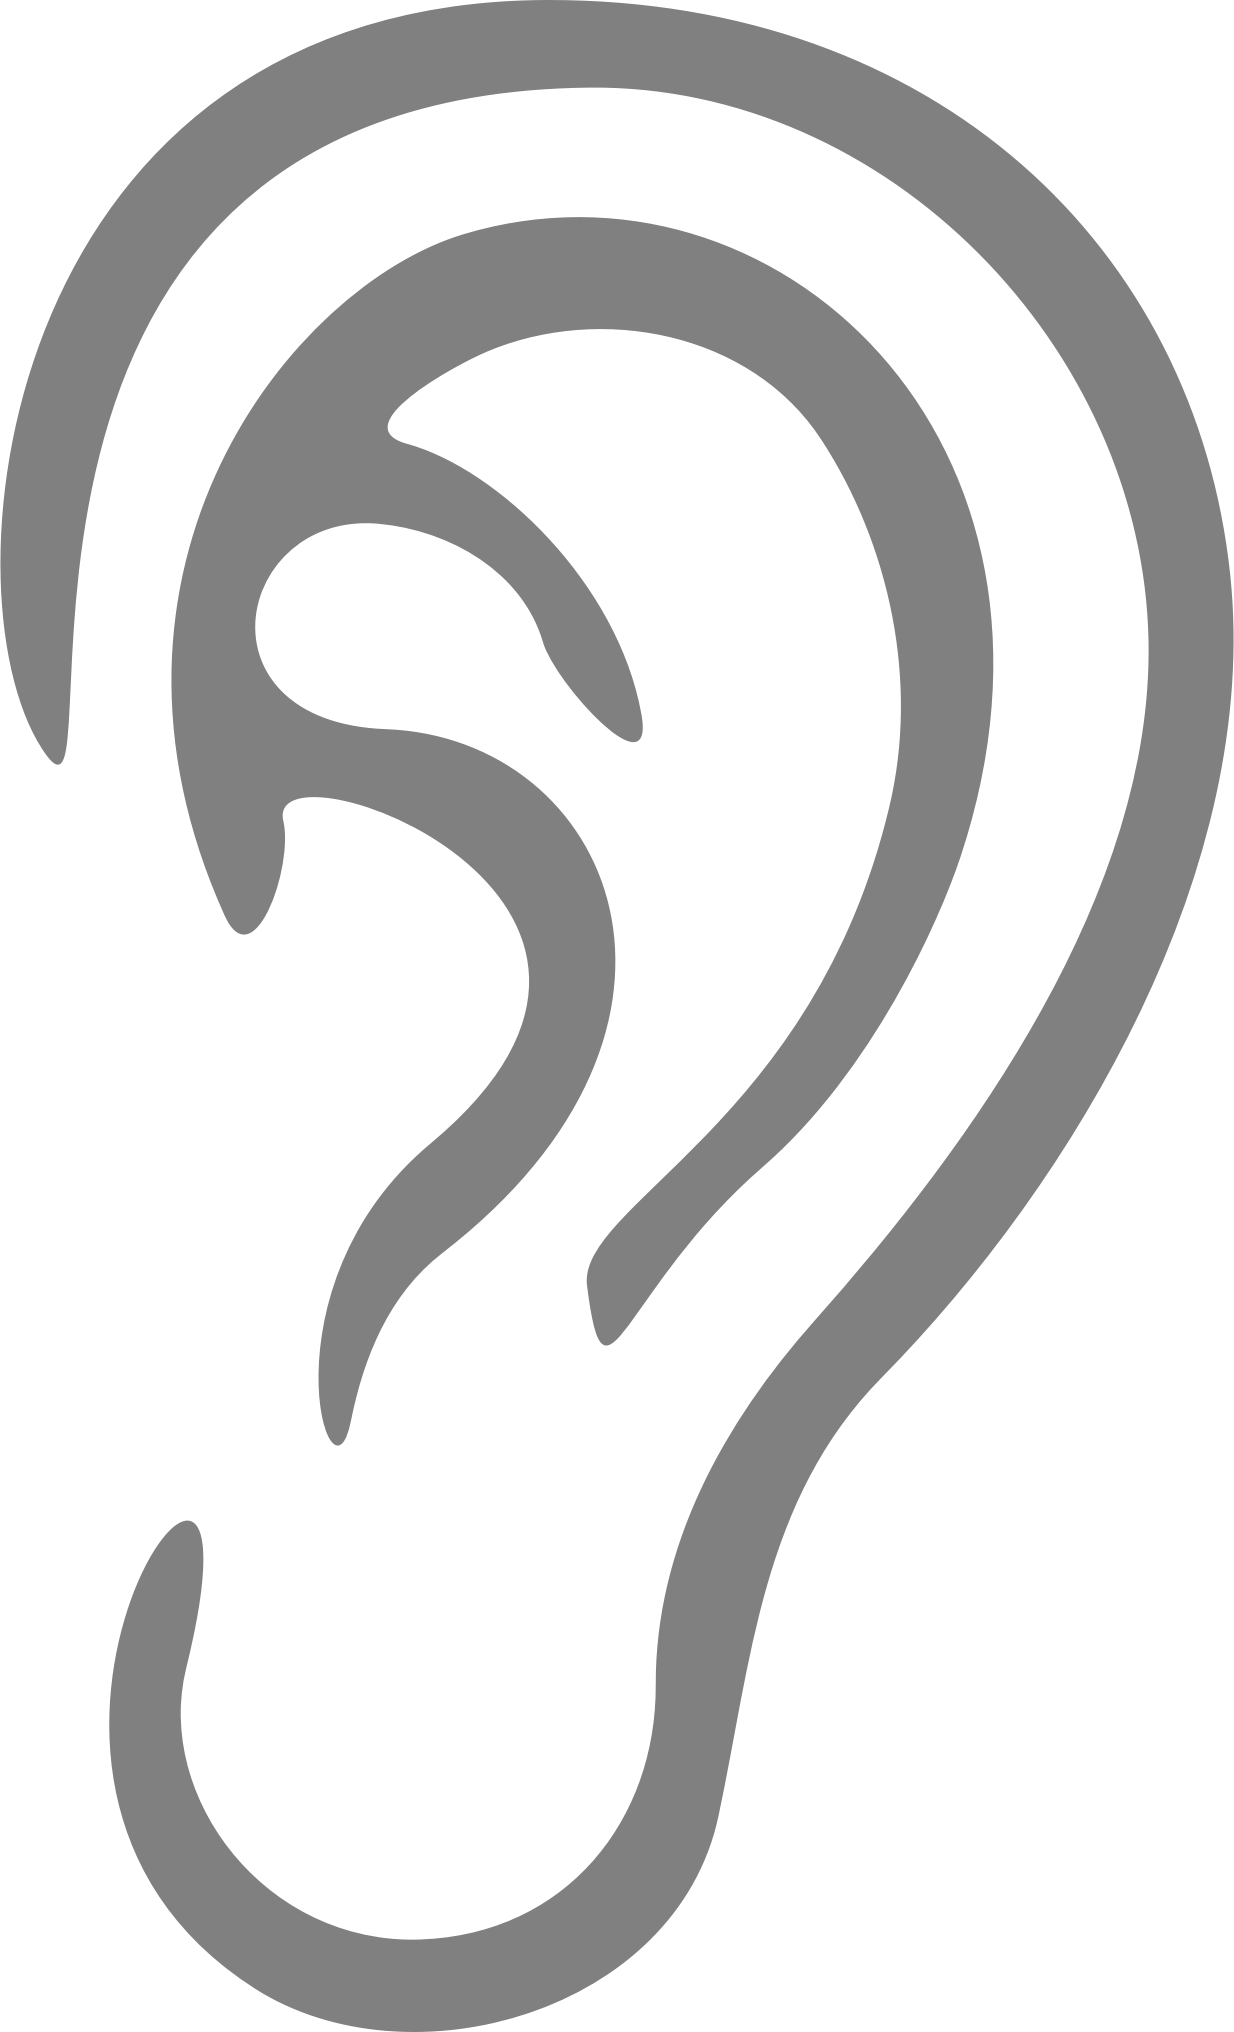 Clipart ear simple. Big image png